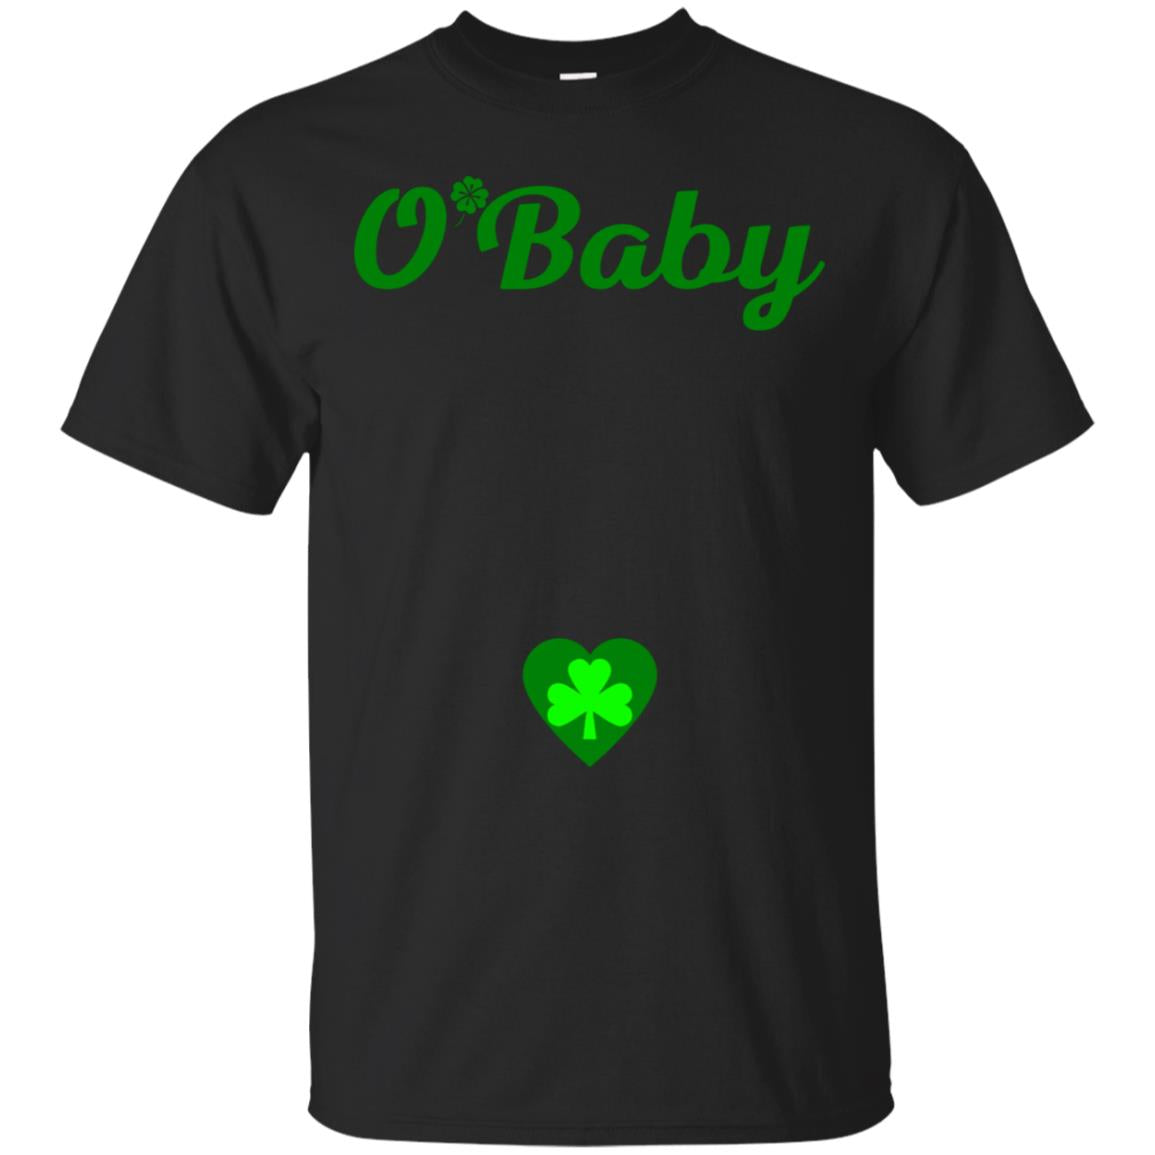 O'Baby St Patrick's Day Pregnancy Announcement Shirt 99promocode